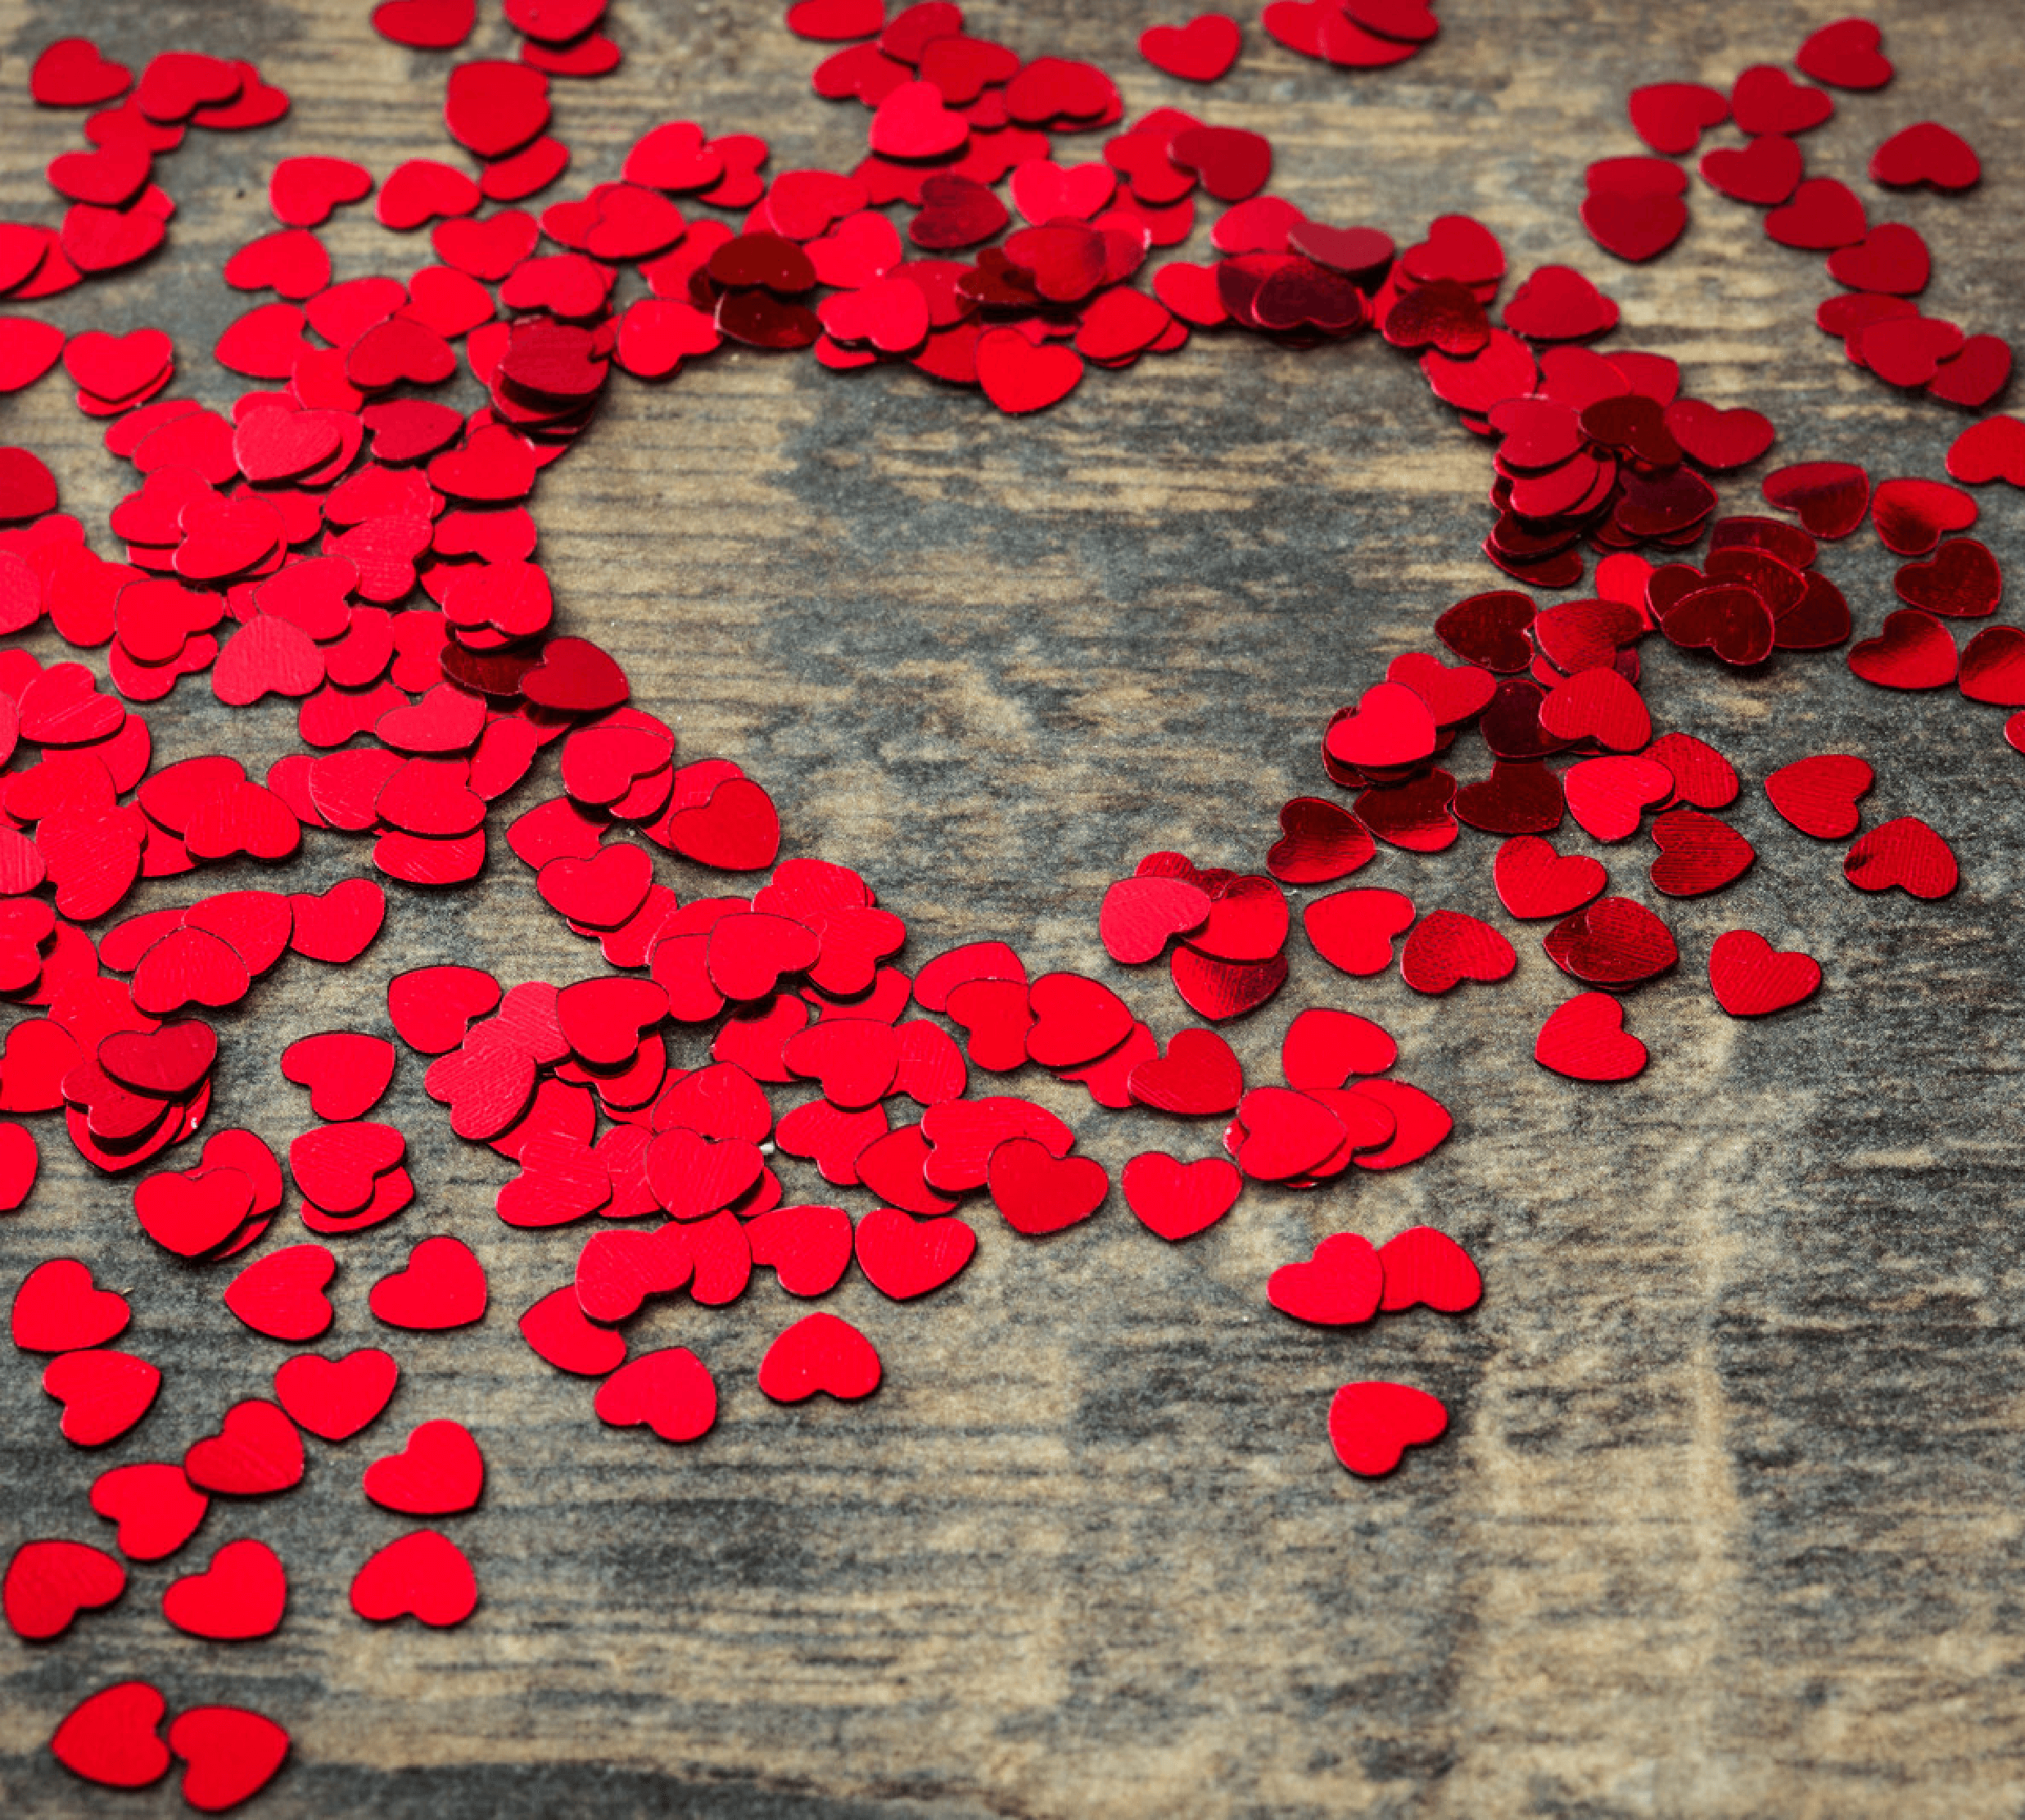 red-heart-confetti-cropped